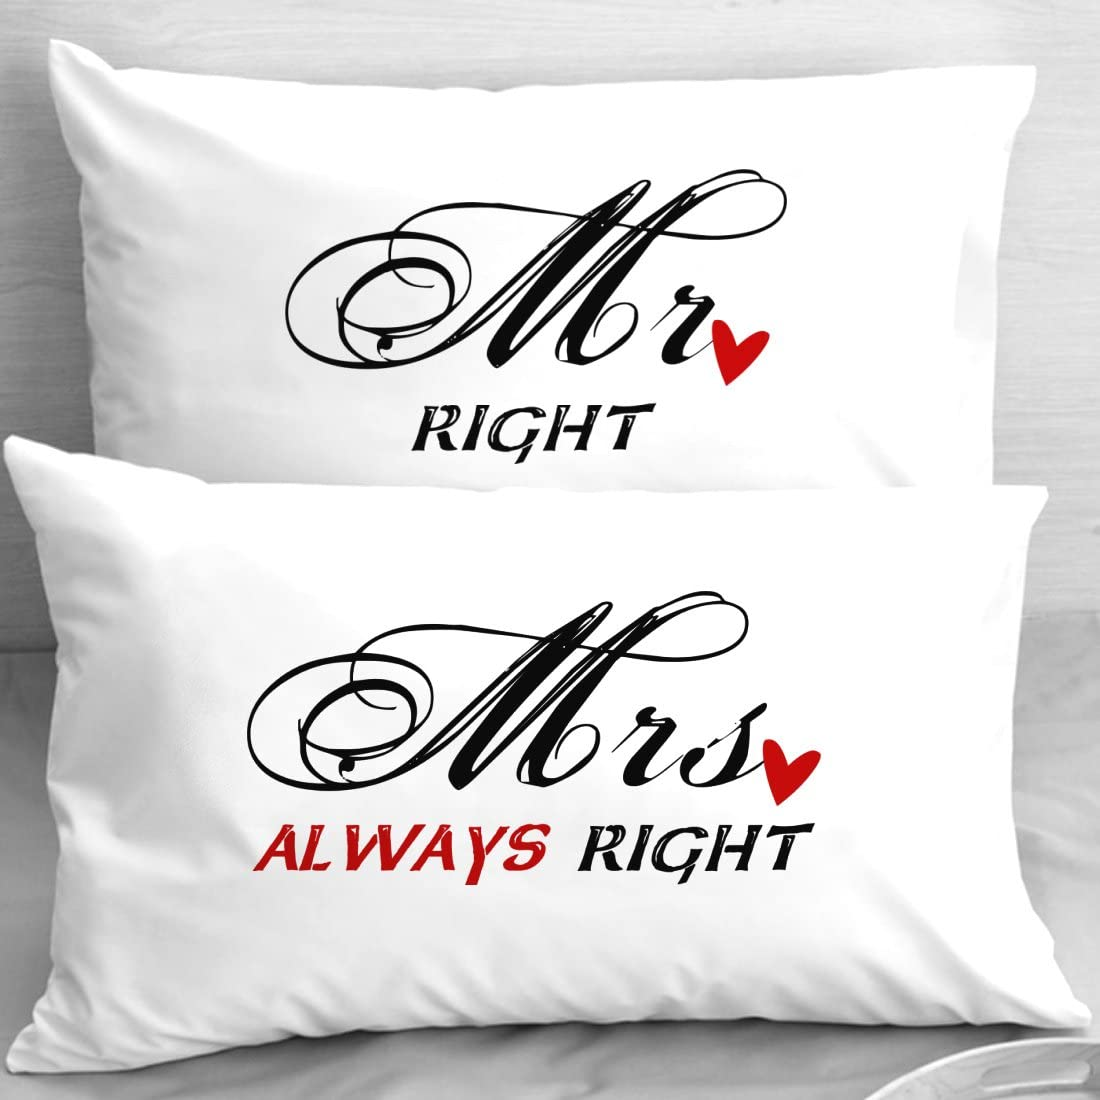 Couple pillowcases Mr Right Mrs Always